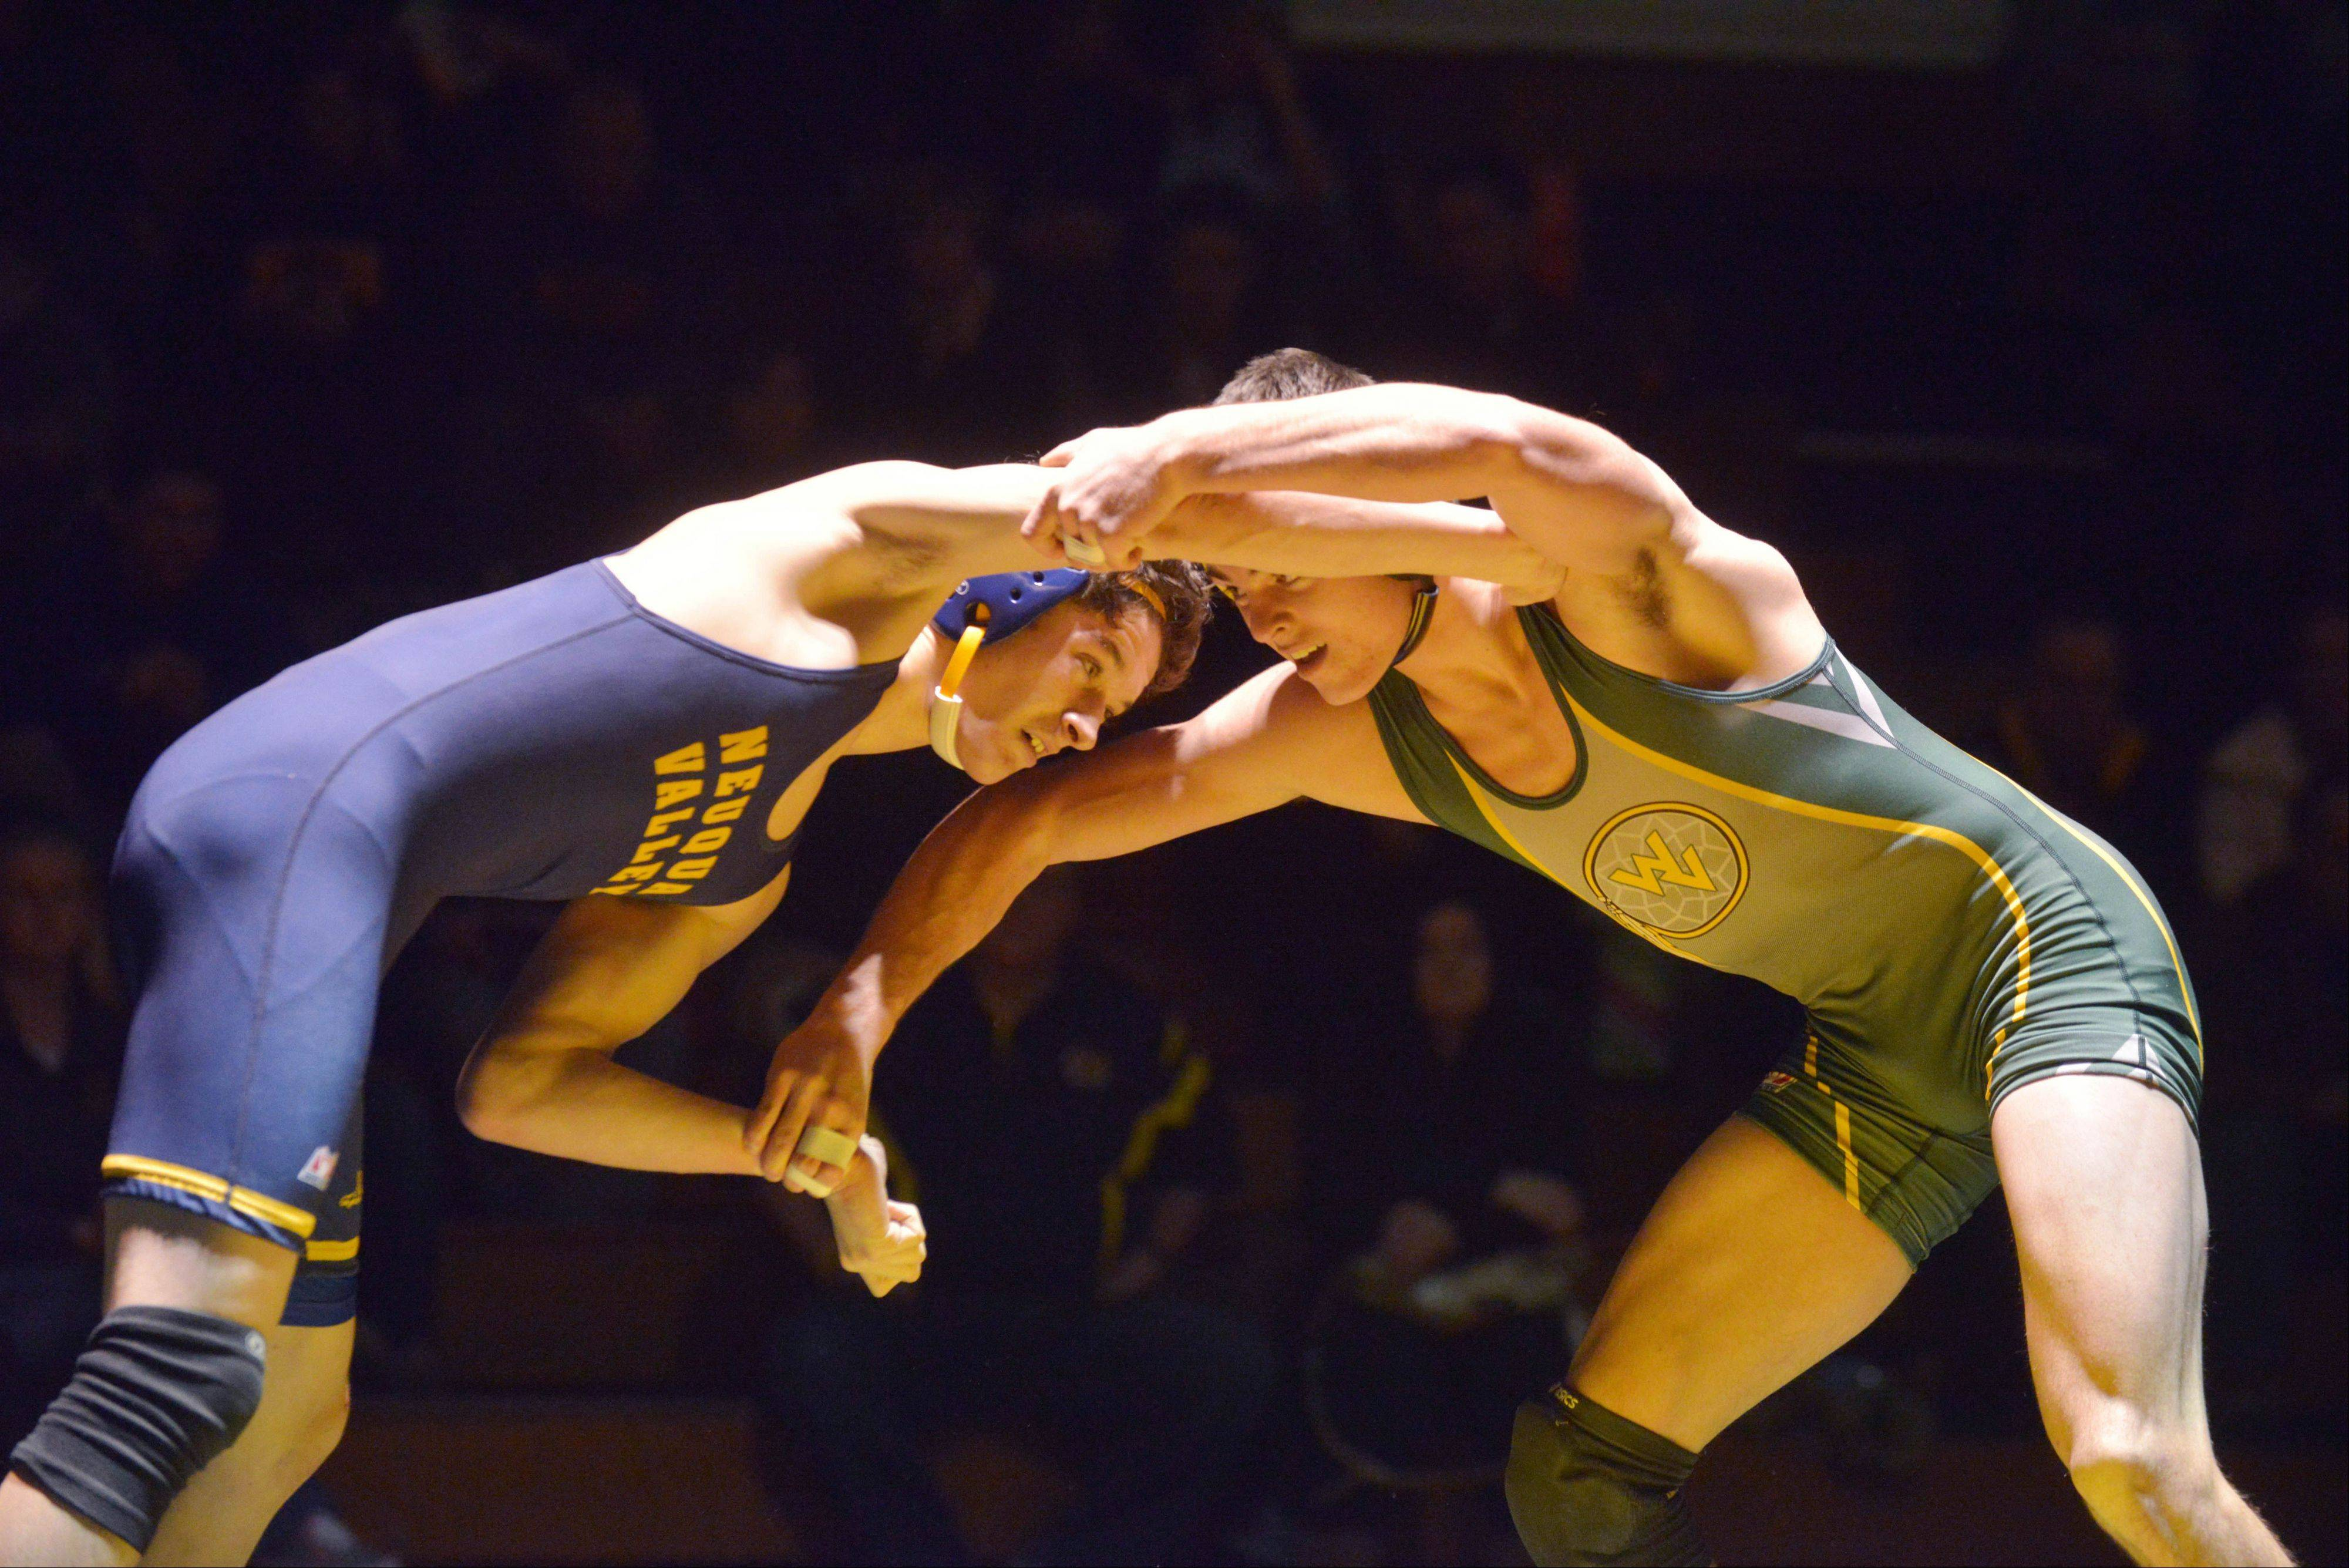 Paul Michna/pmichna@dailyherald.com Jackson Modaff of Neuqua and Jimmy Davis of Waubonsie Valley take part in the 138 pound match during the Neuqua Valley at Waubonsie Valley wrestling meet Friday.